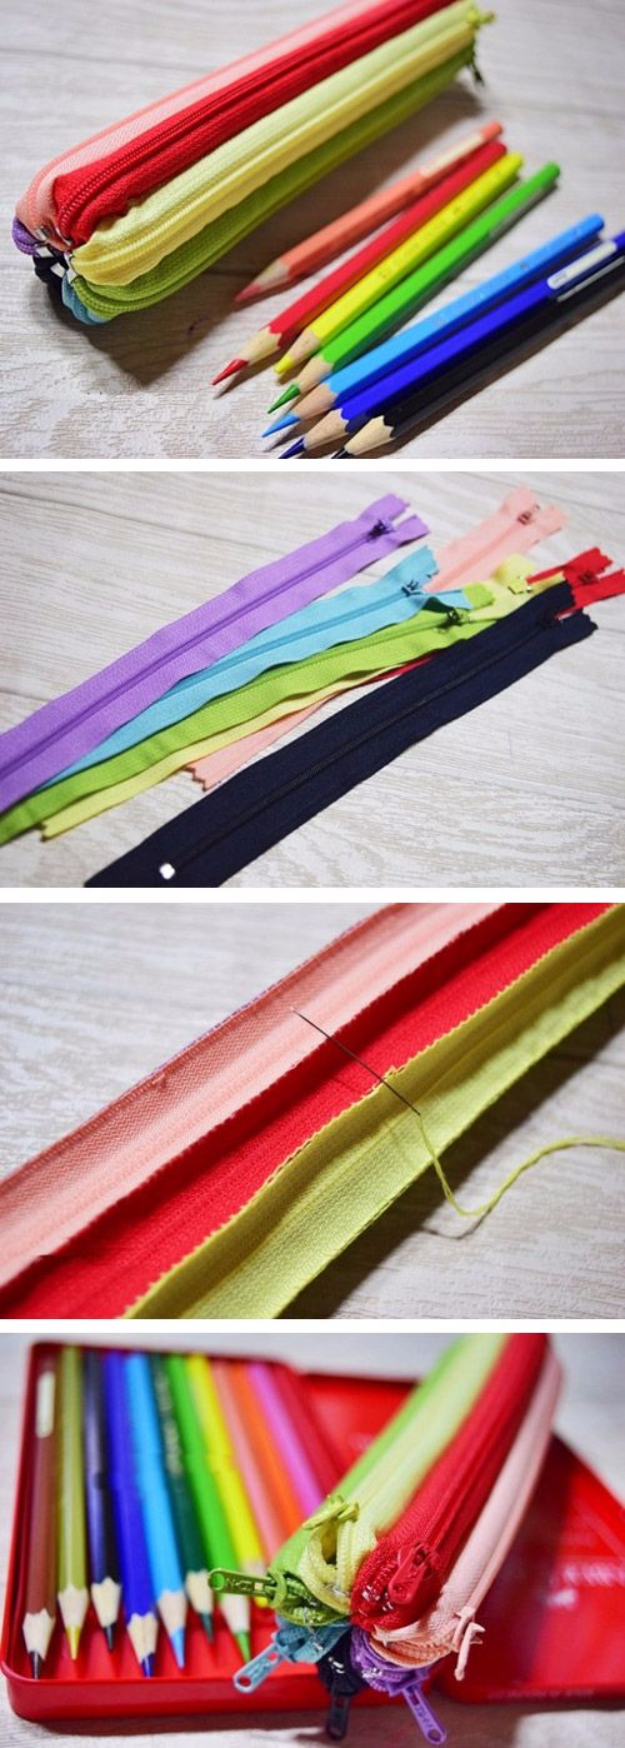 Creative DIY Projects With Zippers